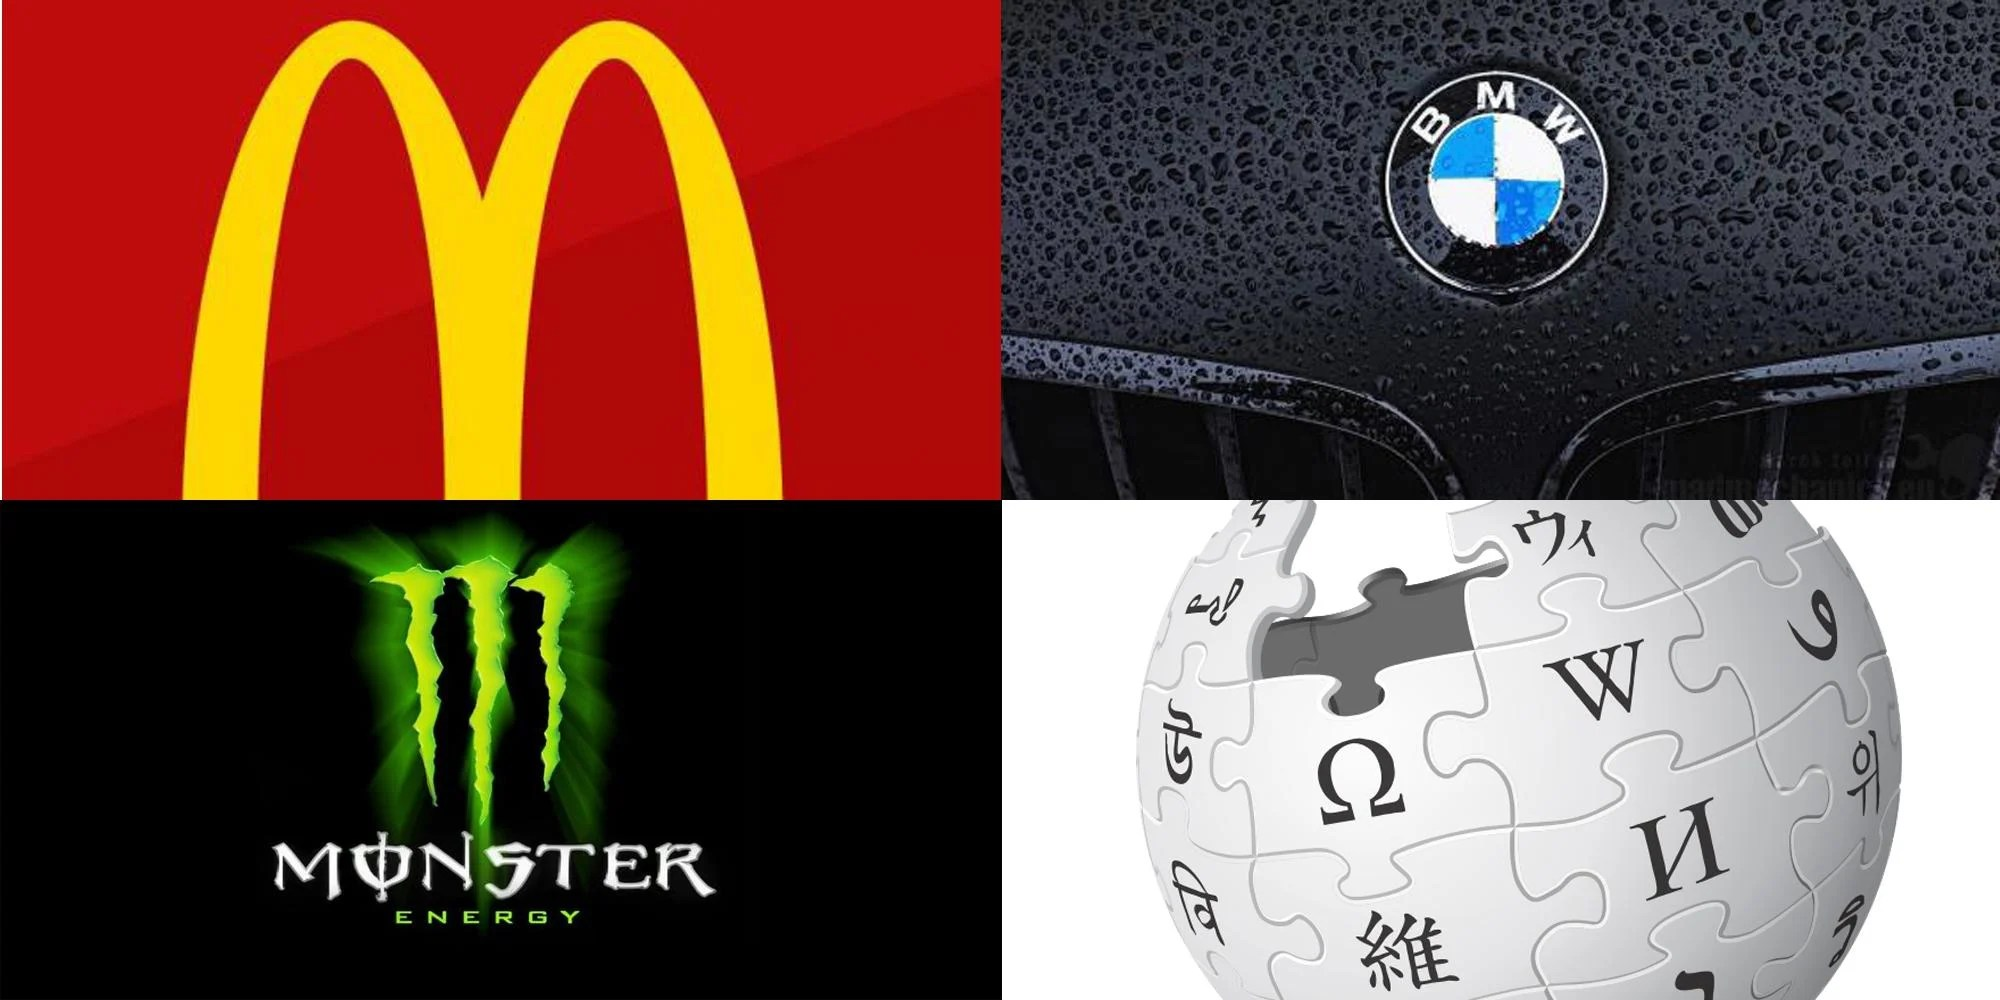 Food Logos And Their Names